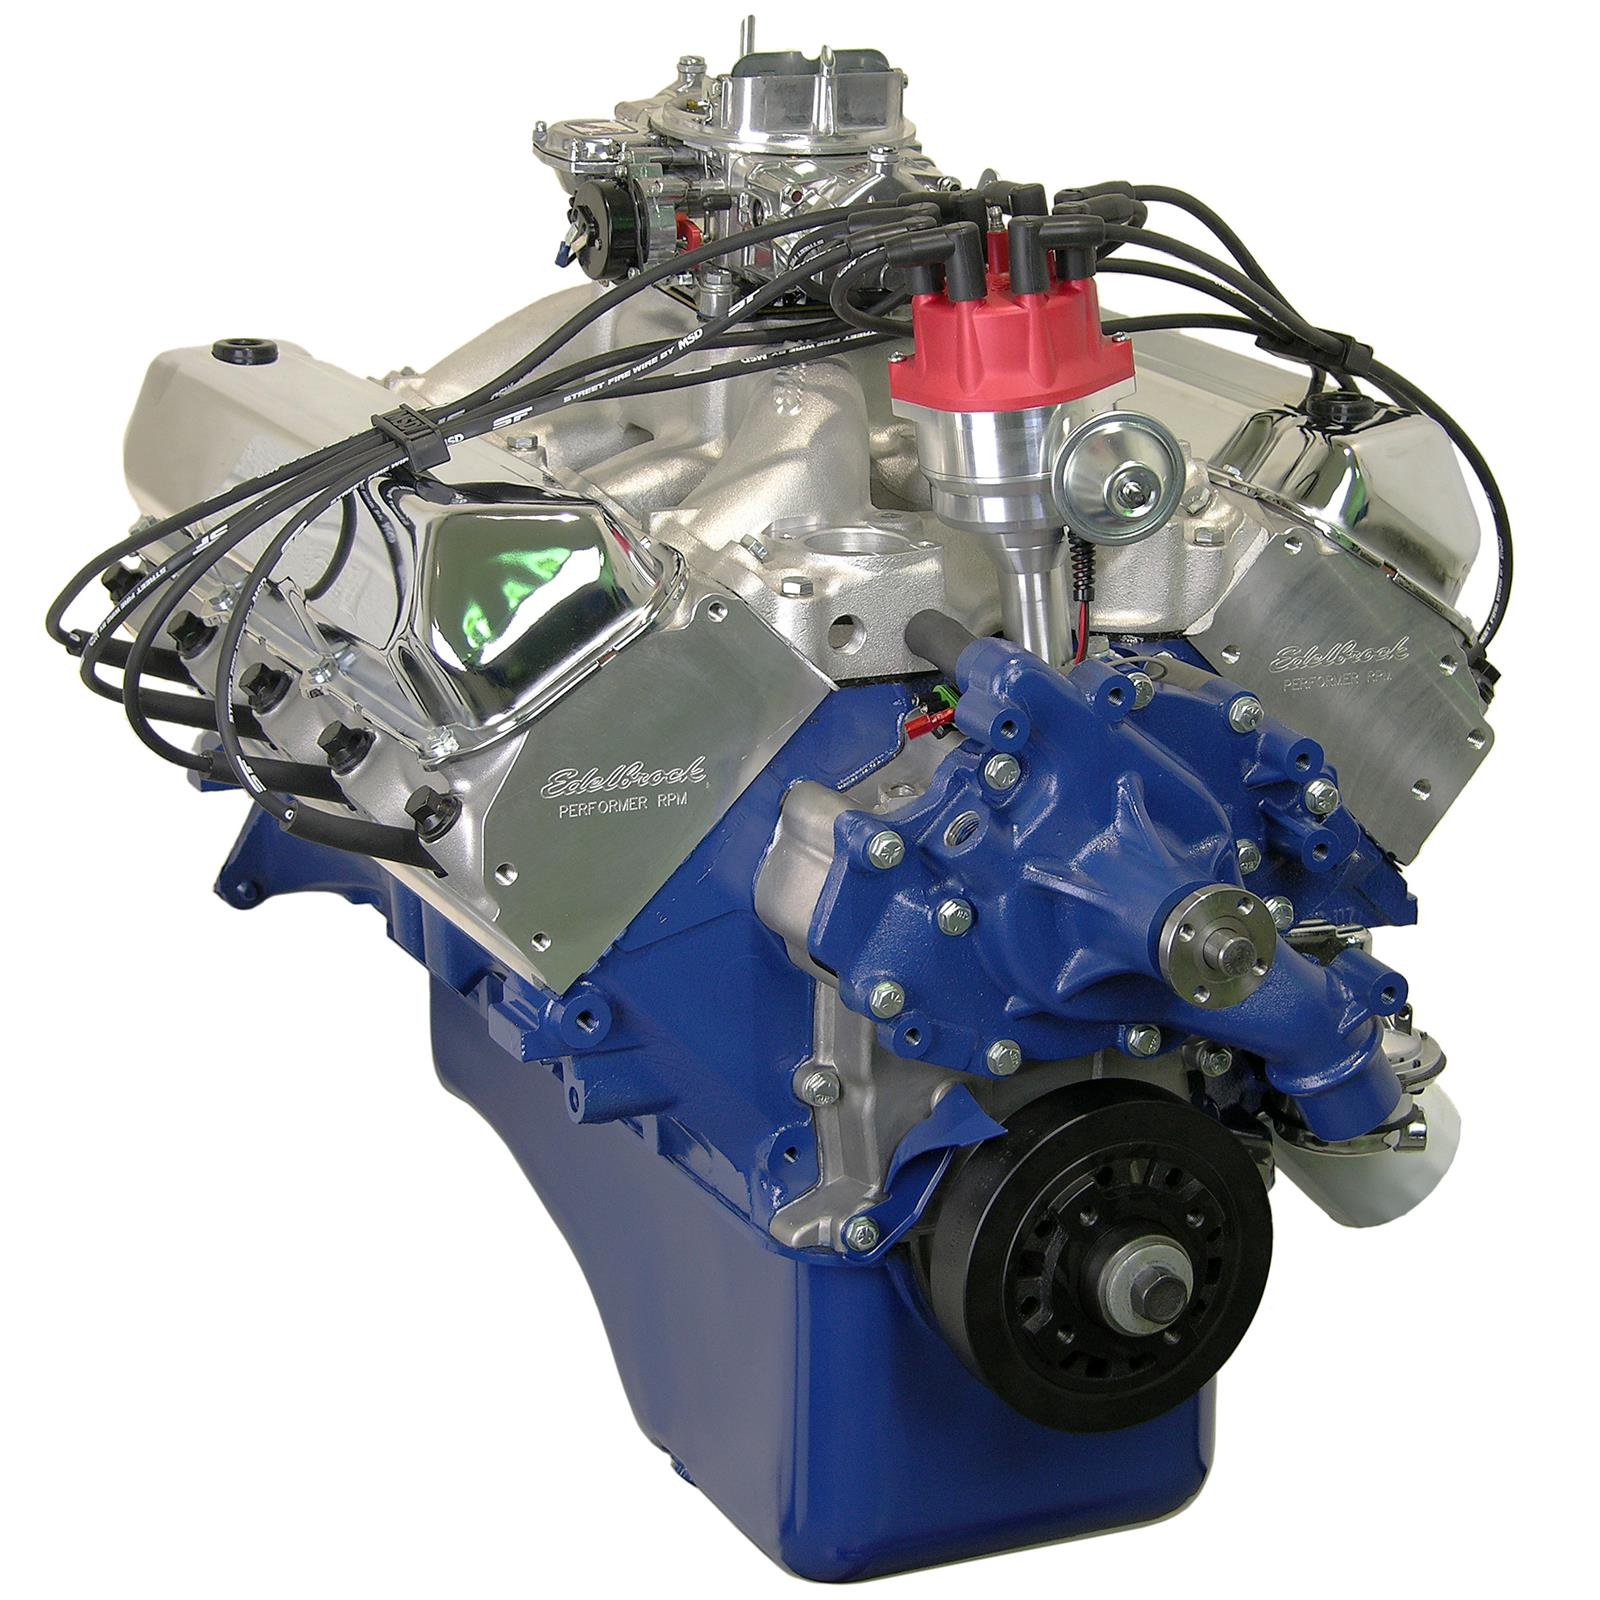 hight resolution of atk high performance ford 460 525 hp stage 3 long block crate engines hp19c free shipping on orders over 99 at summit racing